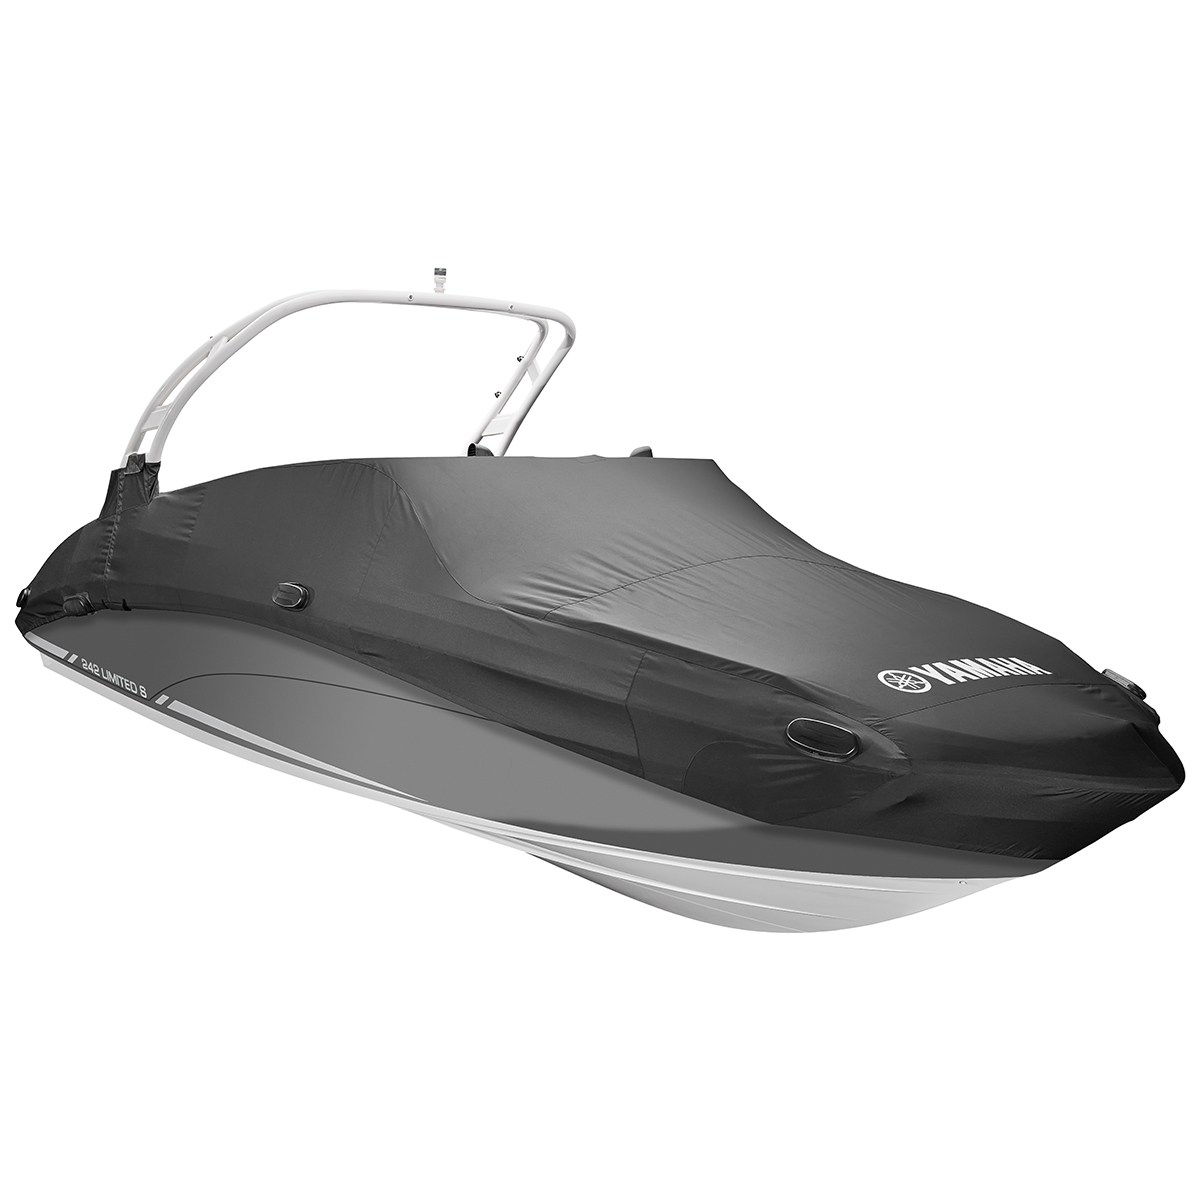 Yamaha 240 242 cover jet boaters community forum for Yamaha jet boat forum